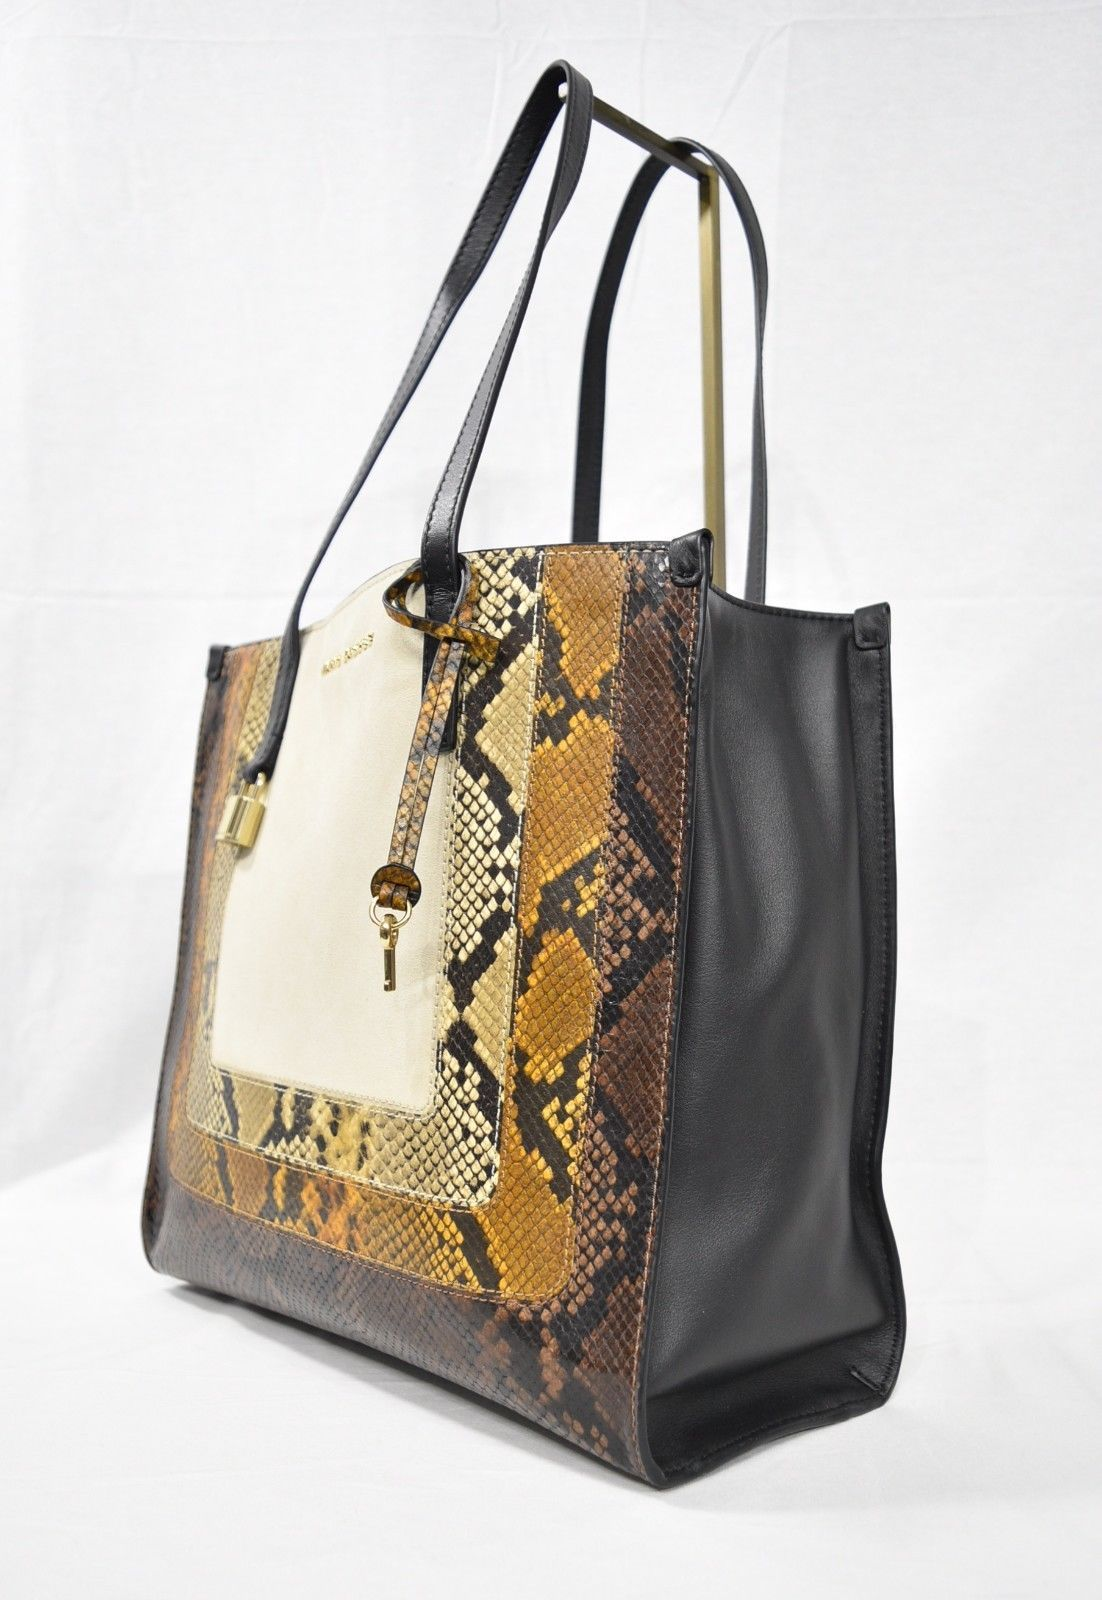 b5c74dfedada MARC By Marc Jacobs M0012901 The Snake Grind Shopper Tote Bag in Papyrus  Multi